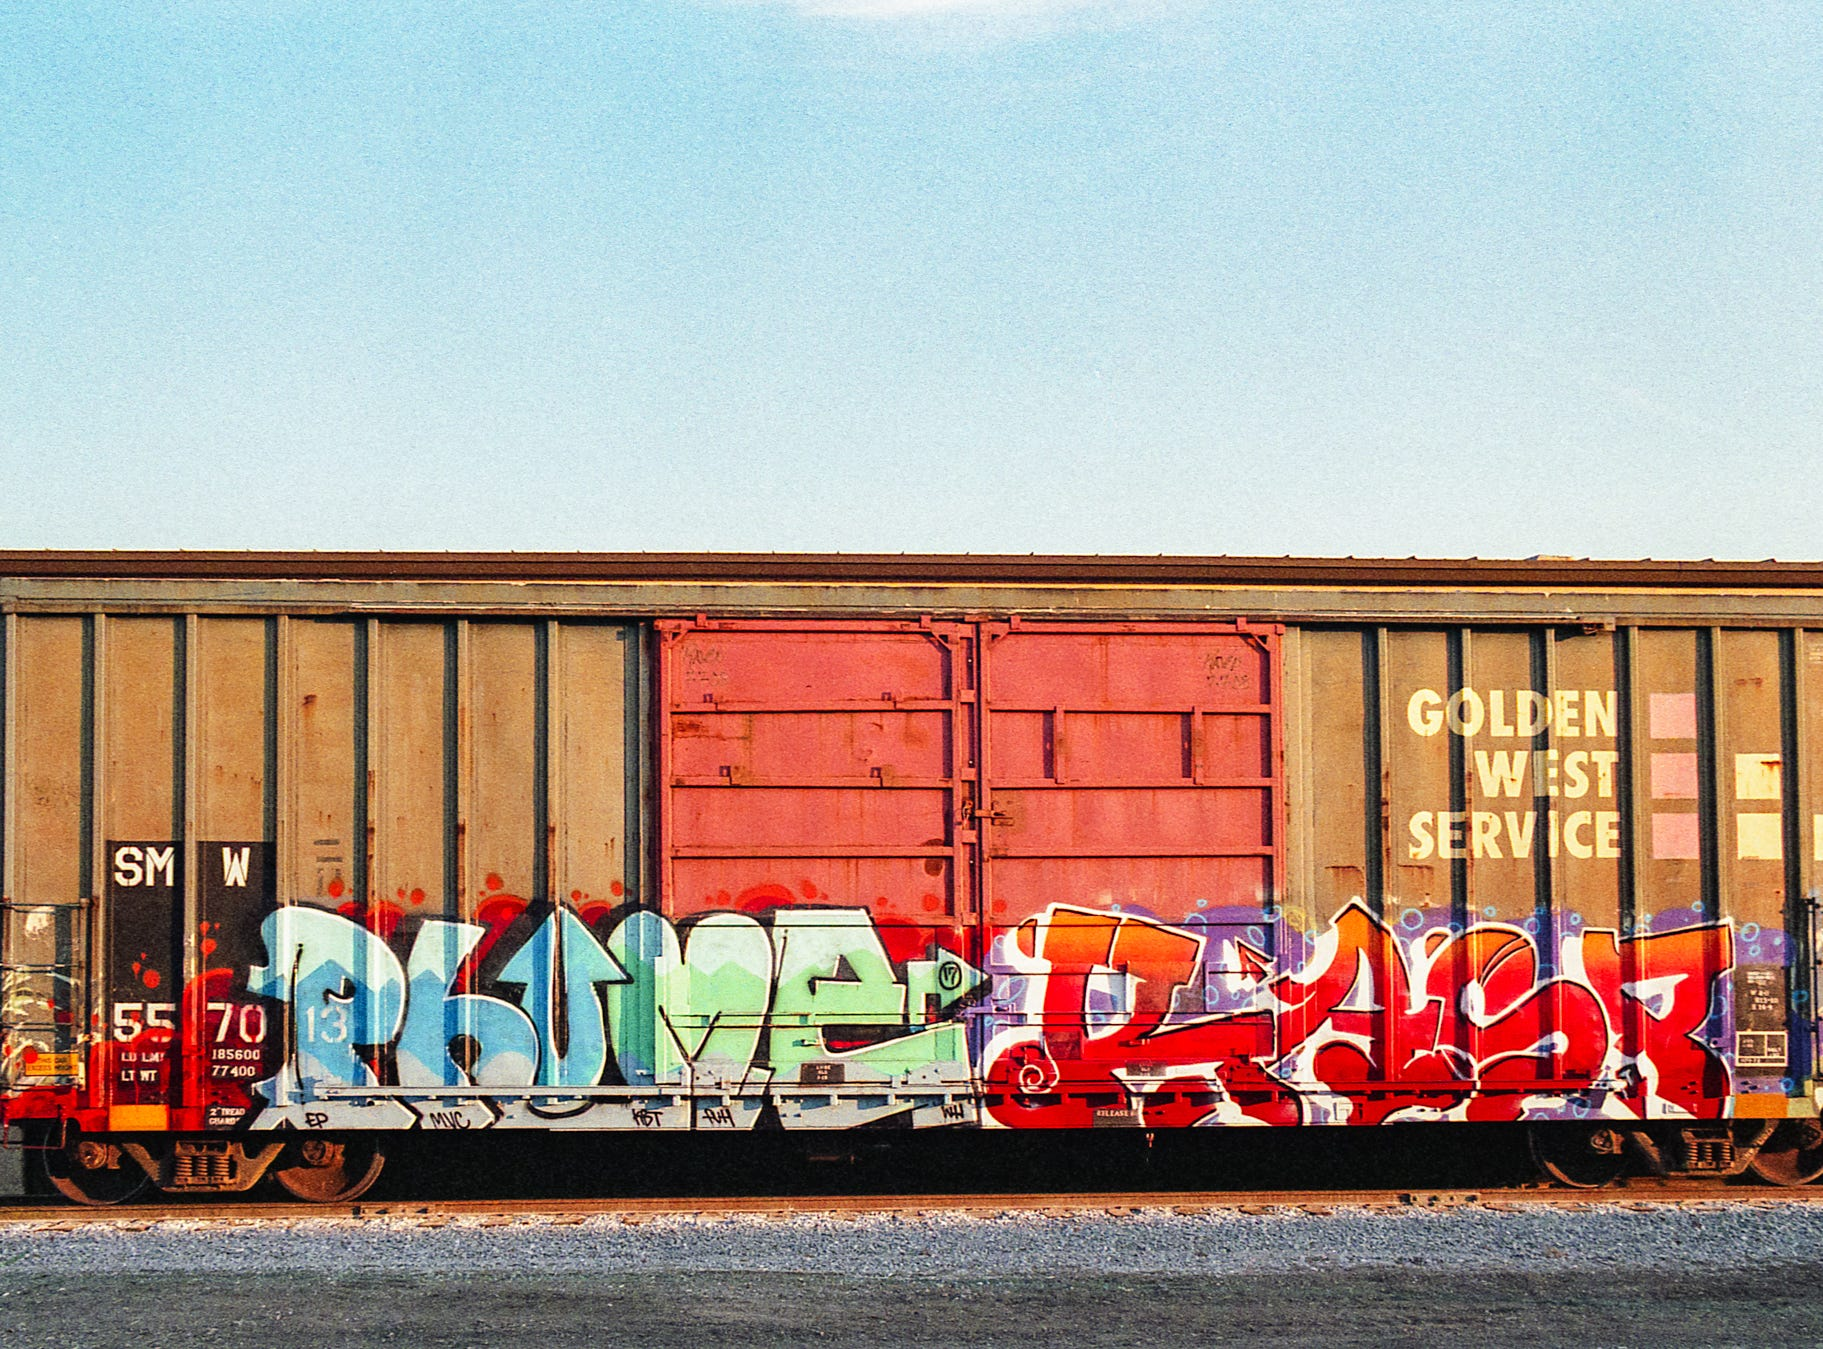 Every photo in this gallery was shot on vintage camera film by Nate Gentzler, a local photographer and member of the York Camera Club. He took these pictures around York.  This is a photo of a vibrant boxcar at the old train station on North Street. [Pentax MX] [Fuji Superia 400]